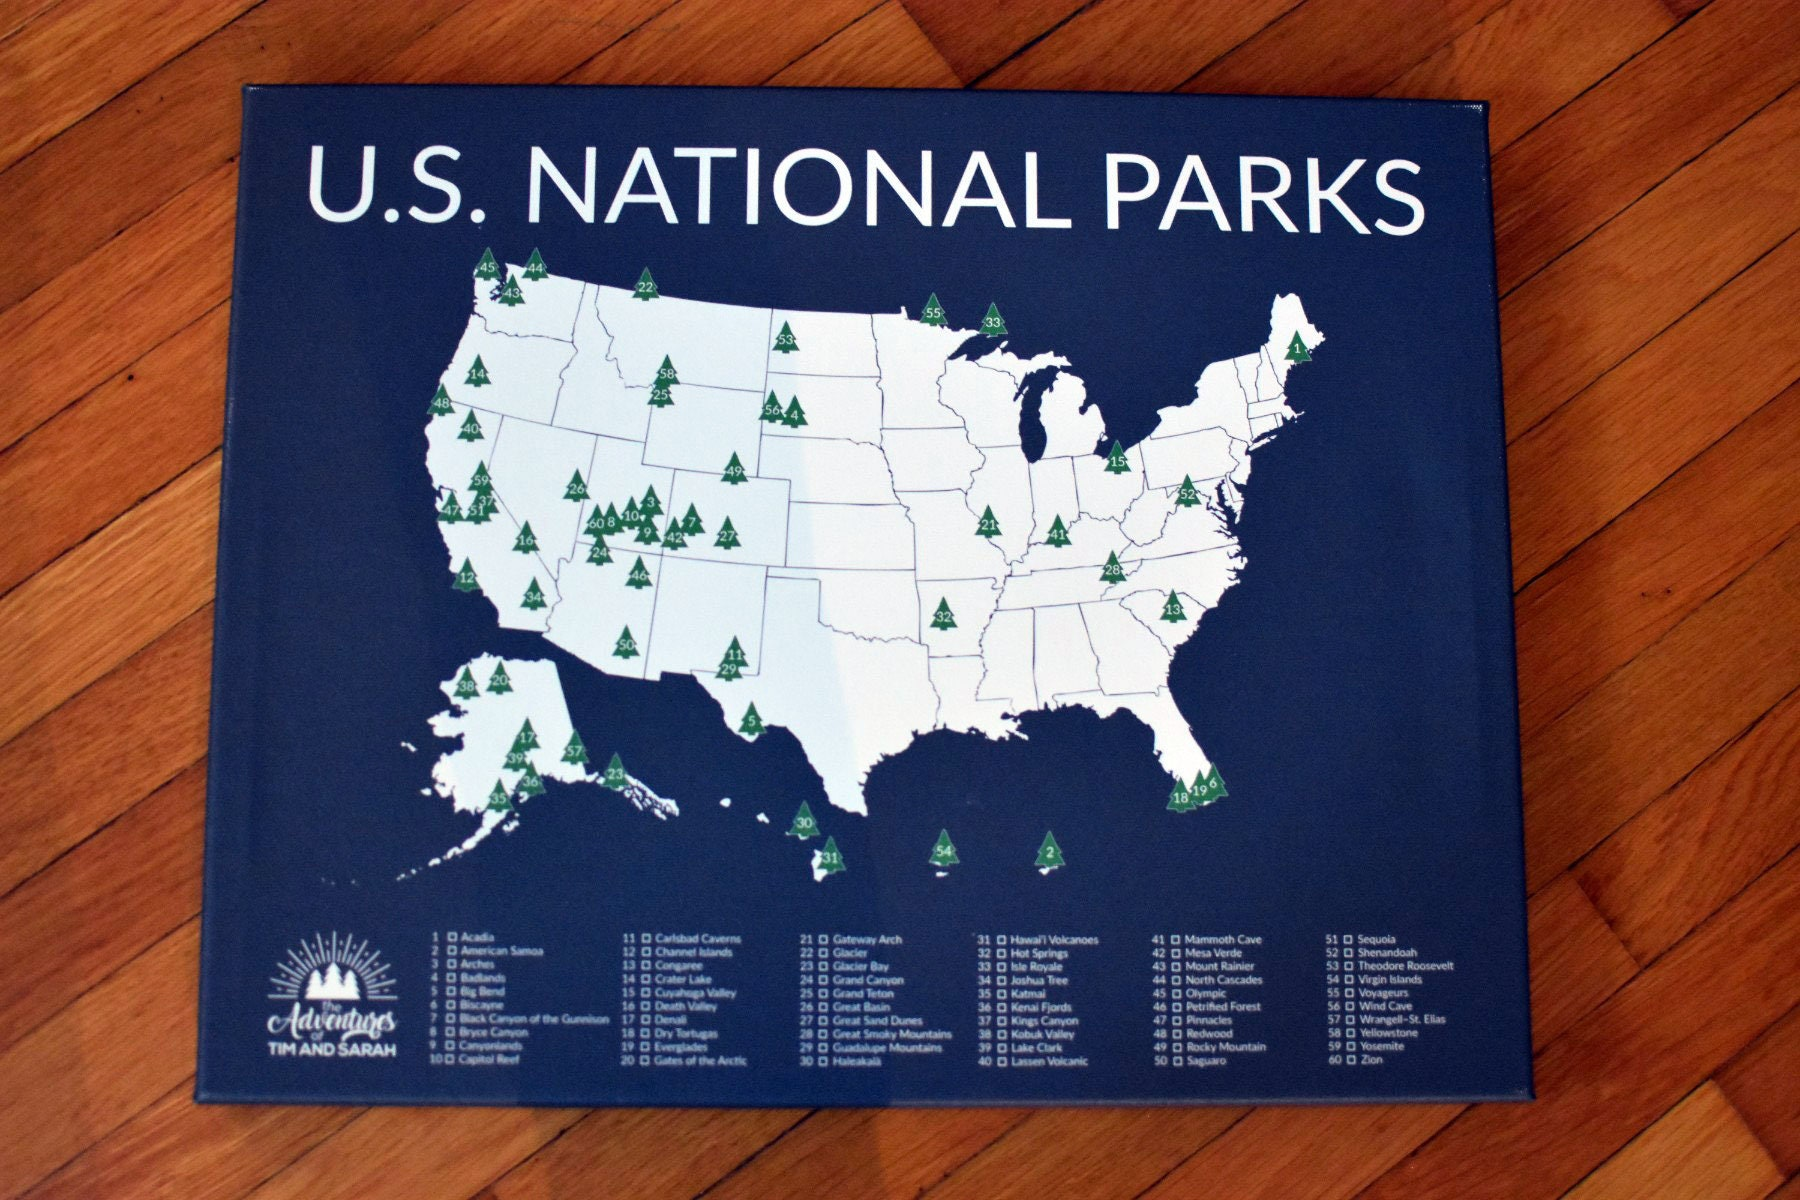 National Park Gift 60 National Parks America Park Map | Etsy on